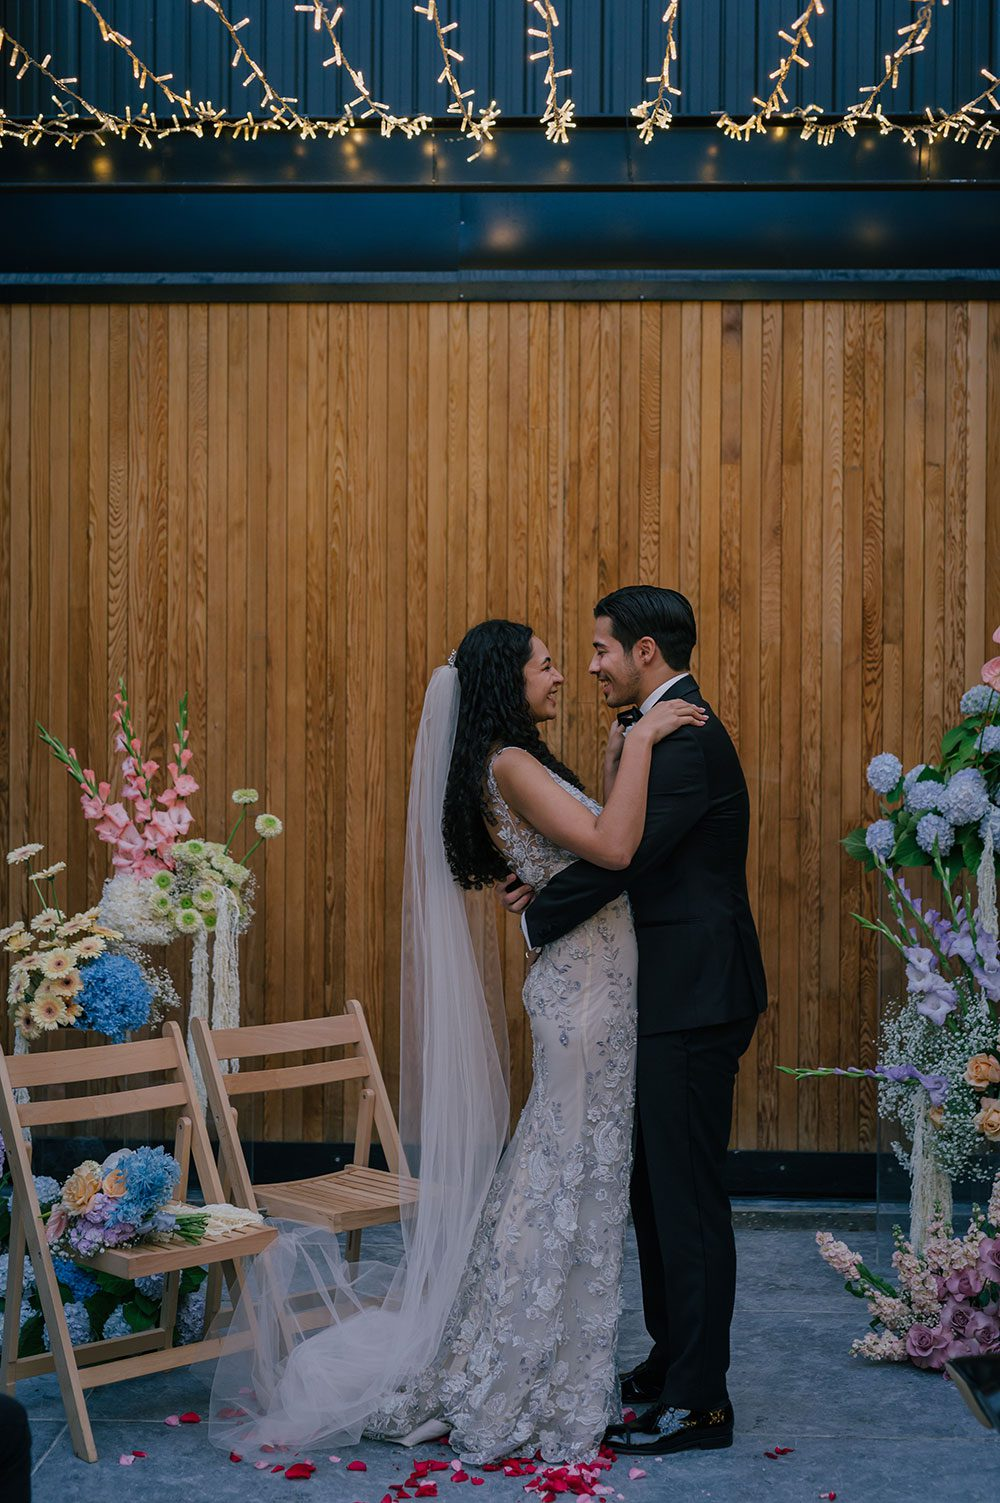 Bride wearing Kazumi Gown in soft grey with hand embellished lace and a low back - hugging at alter